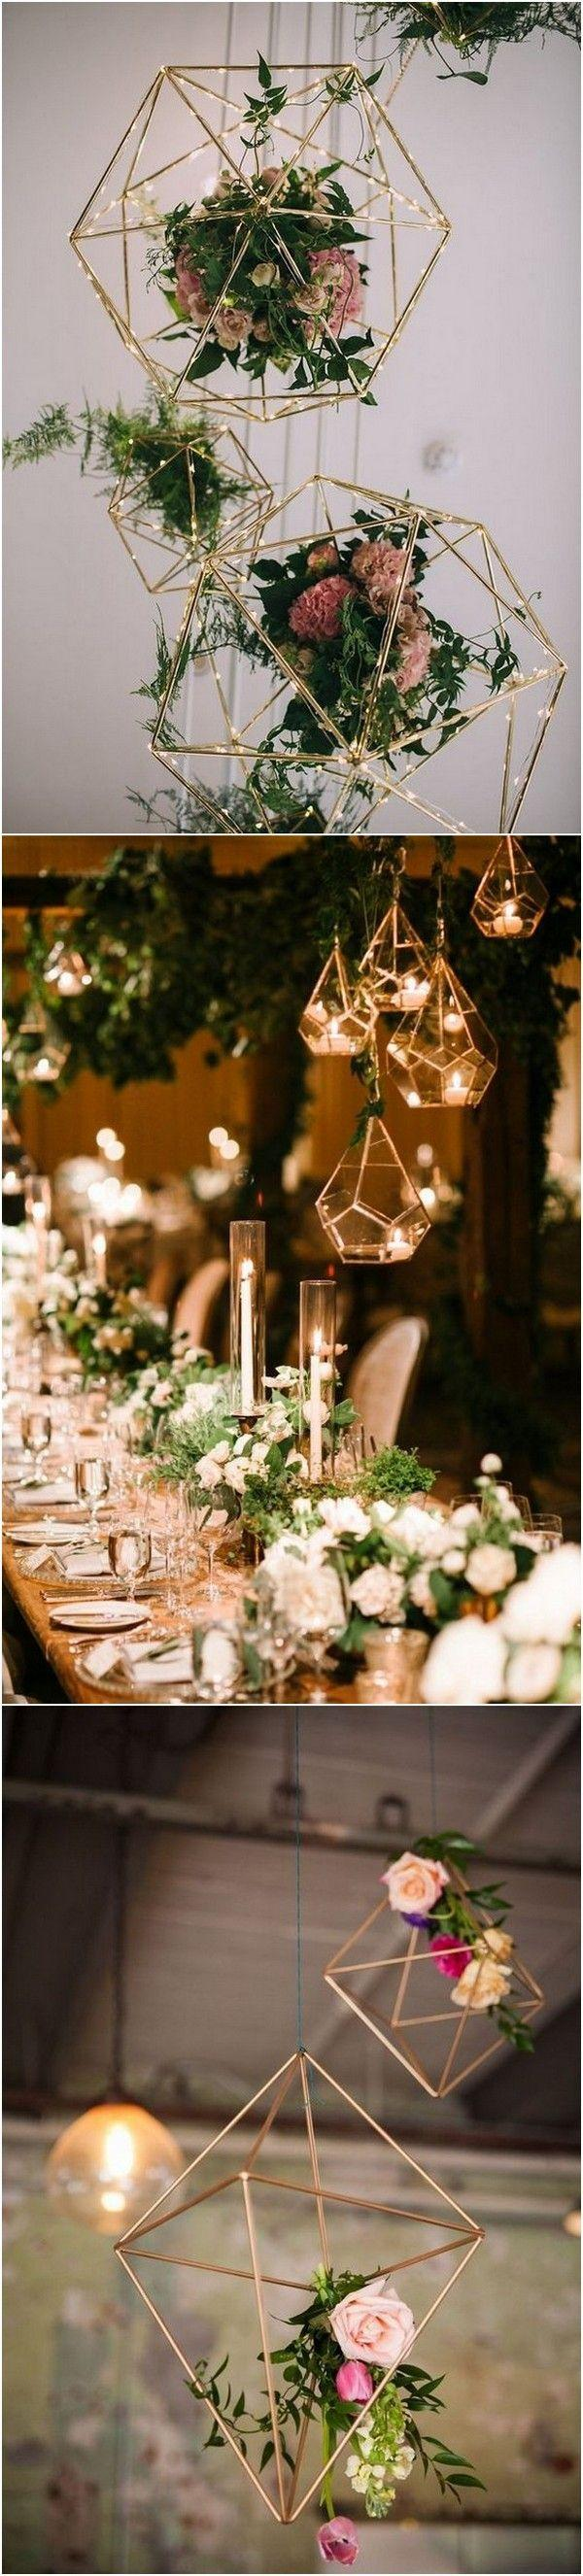 Wedding - 40  Chic Geometric Wedding Ideas For 2018 Trends - Page 6 Of 6